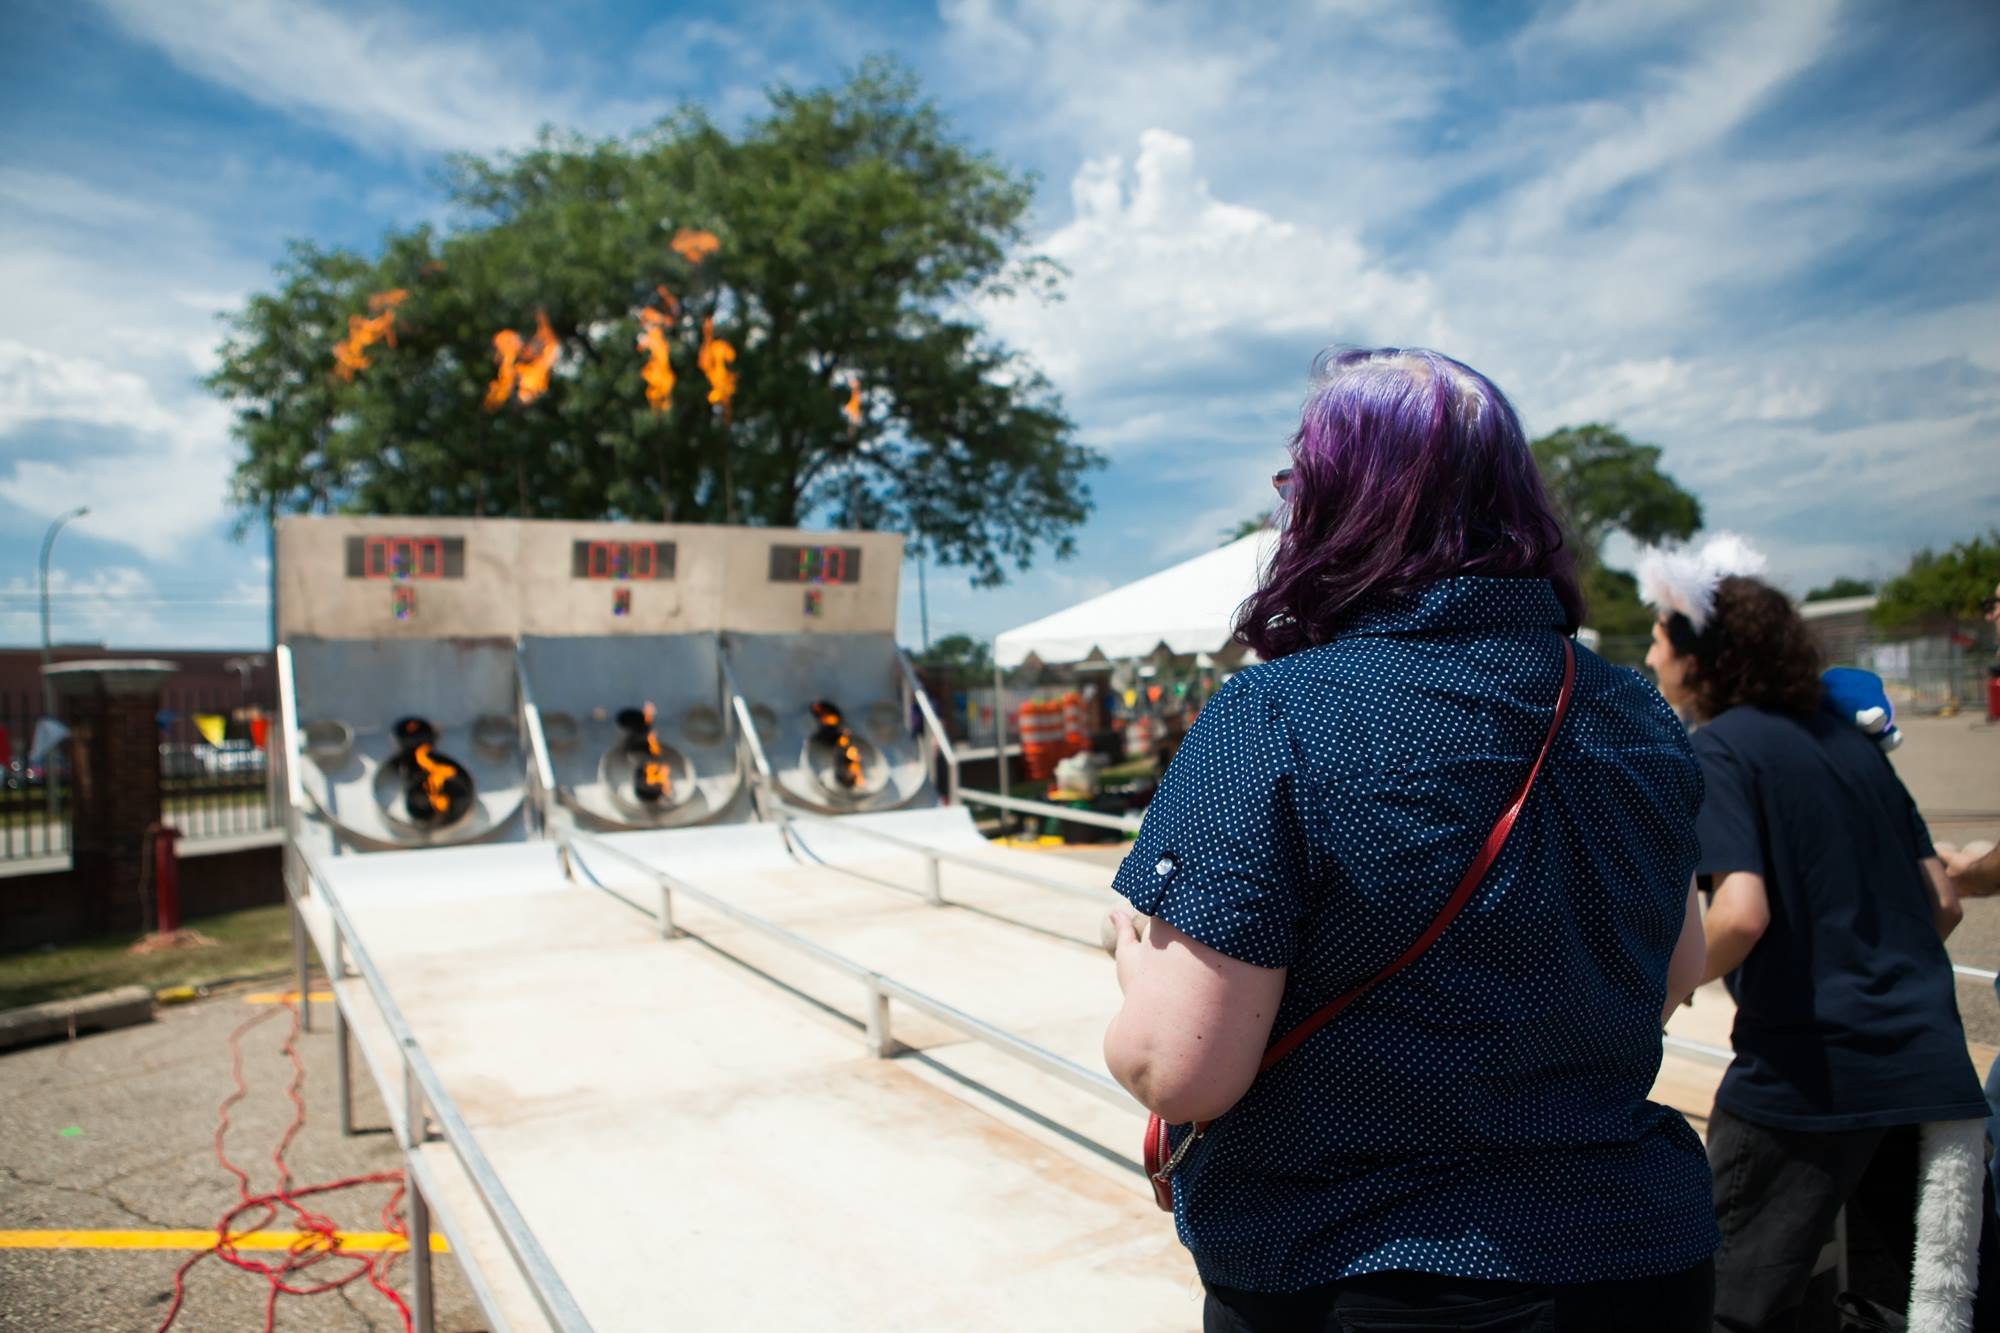 Fire-Breathing Dragons, Vintage Synths, and Liquid Nitrogen at Maker Faire Detroit